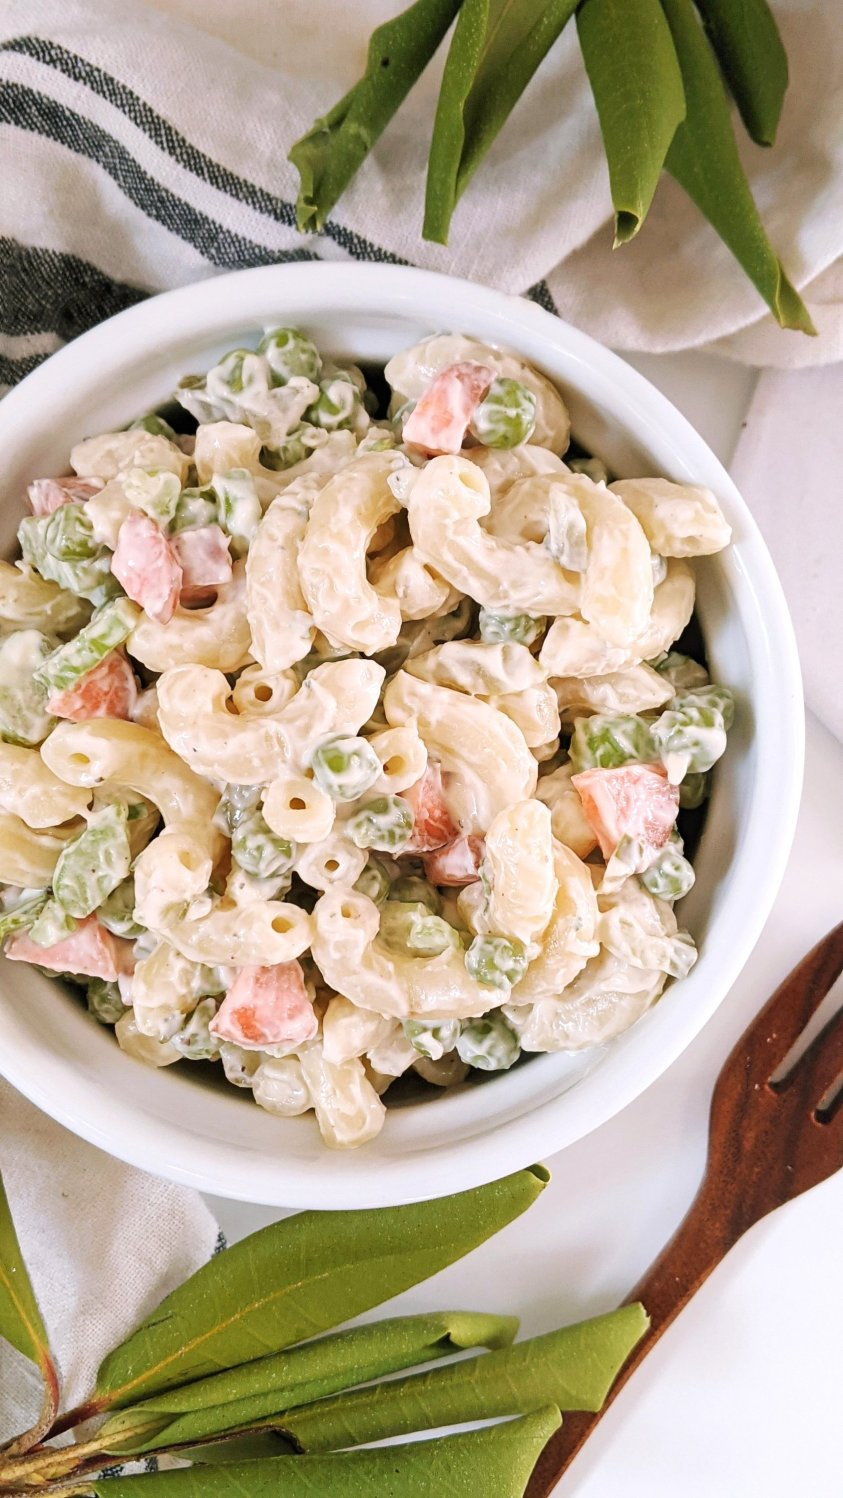 vegan macaroni salad with peas recipe dairy free gluten free macaroni salad recipes healthy plant based ranch mac salad with peas